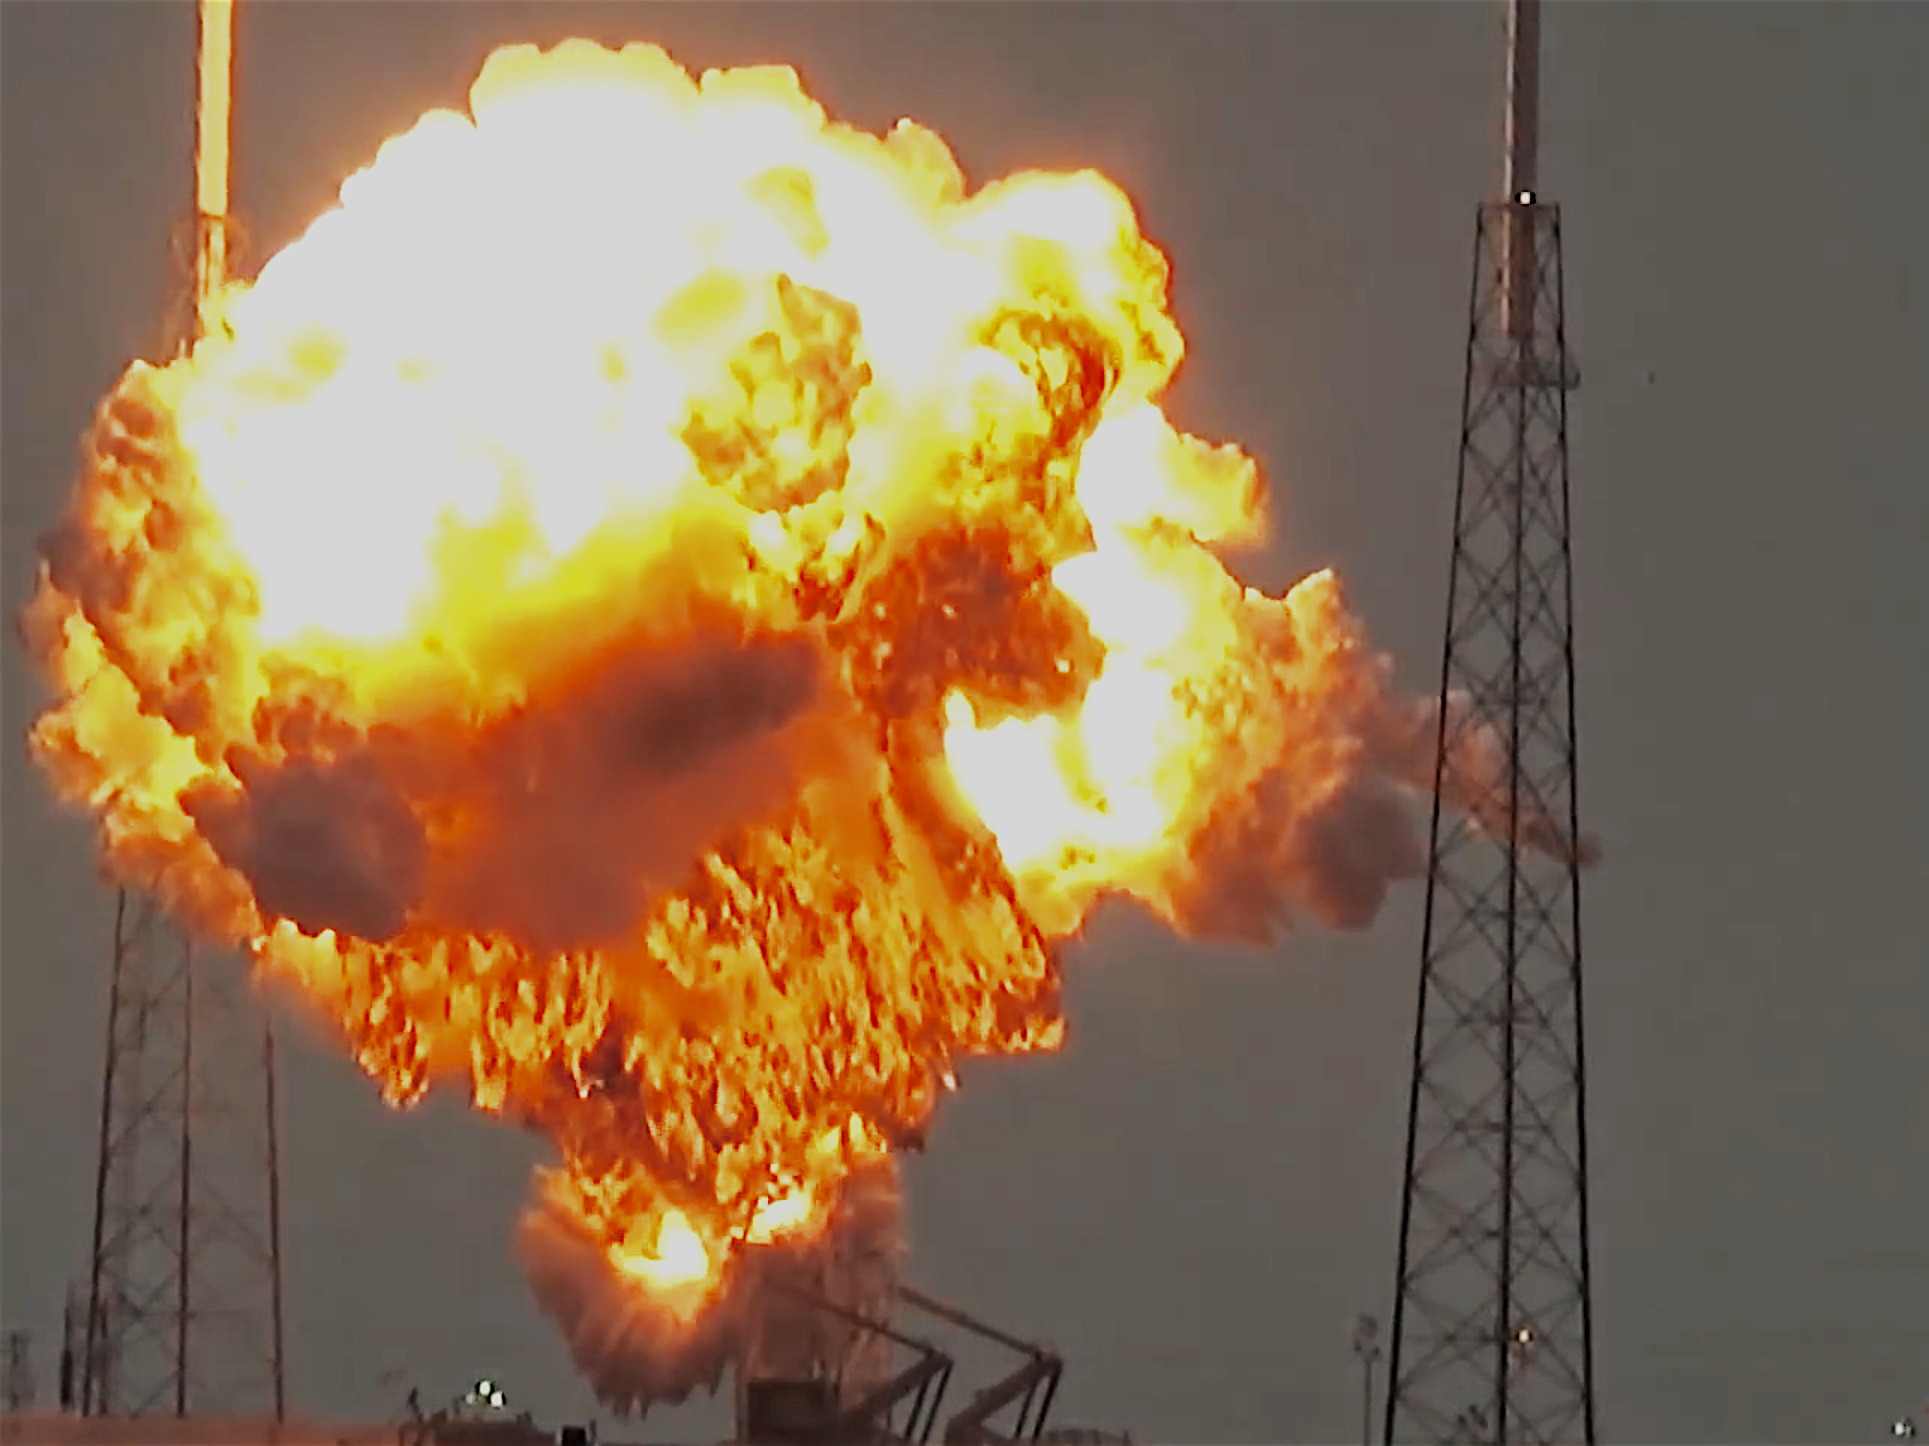 Did a UFO Sabotage the SpaceX Falcon 9 Test?